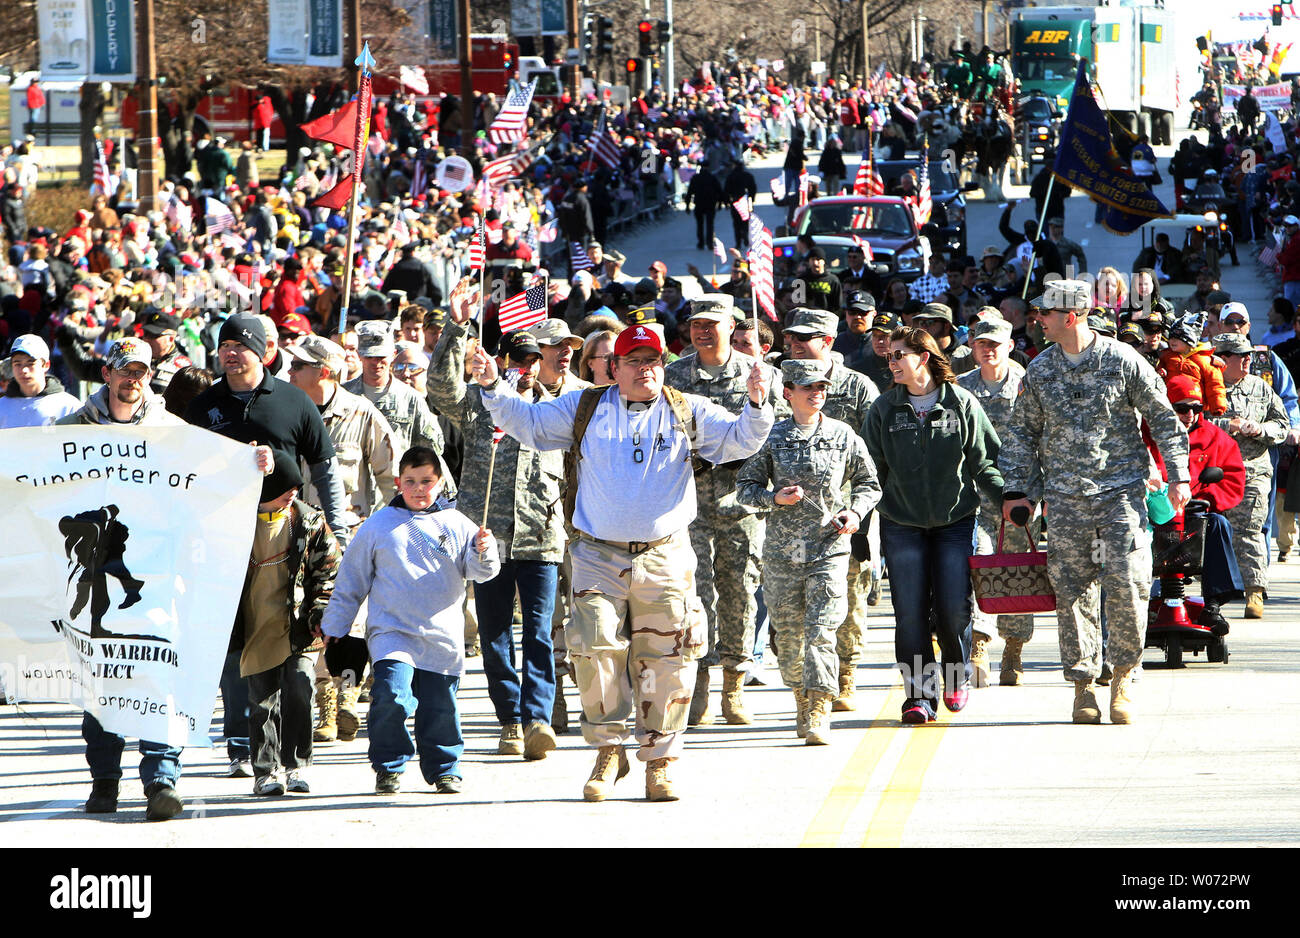 Veterans march in a parade in St. Louis on January 28, 2012. Thousands of people lined a parade route in downtown St. Louis for the nationÕs first parade to honor those who have served in Iraq and Afghanistan. UPI/Bill Greenblatt - Stock Image